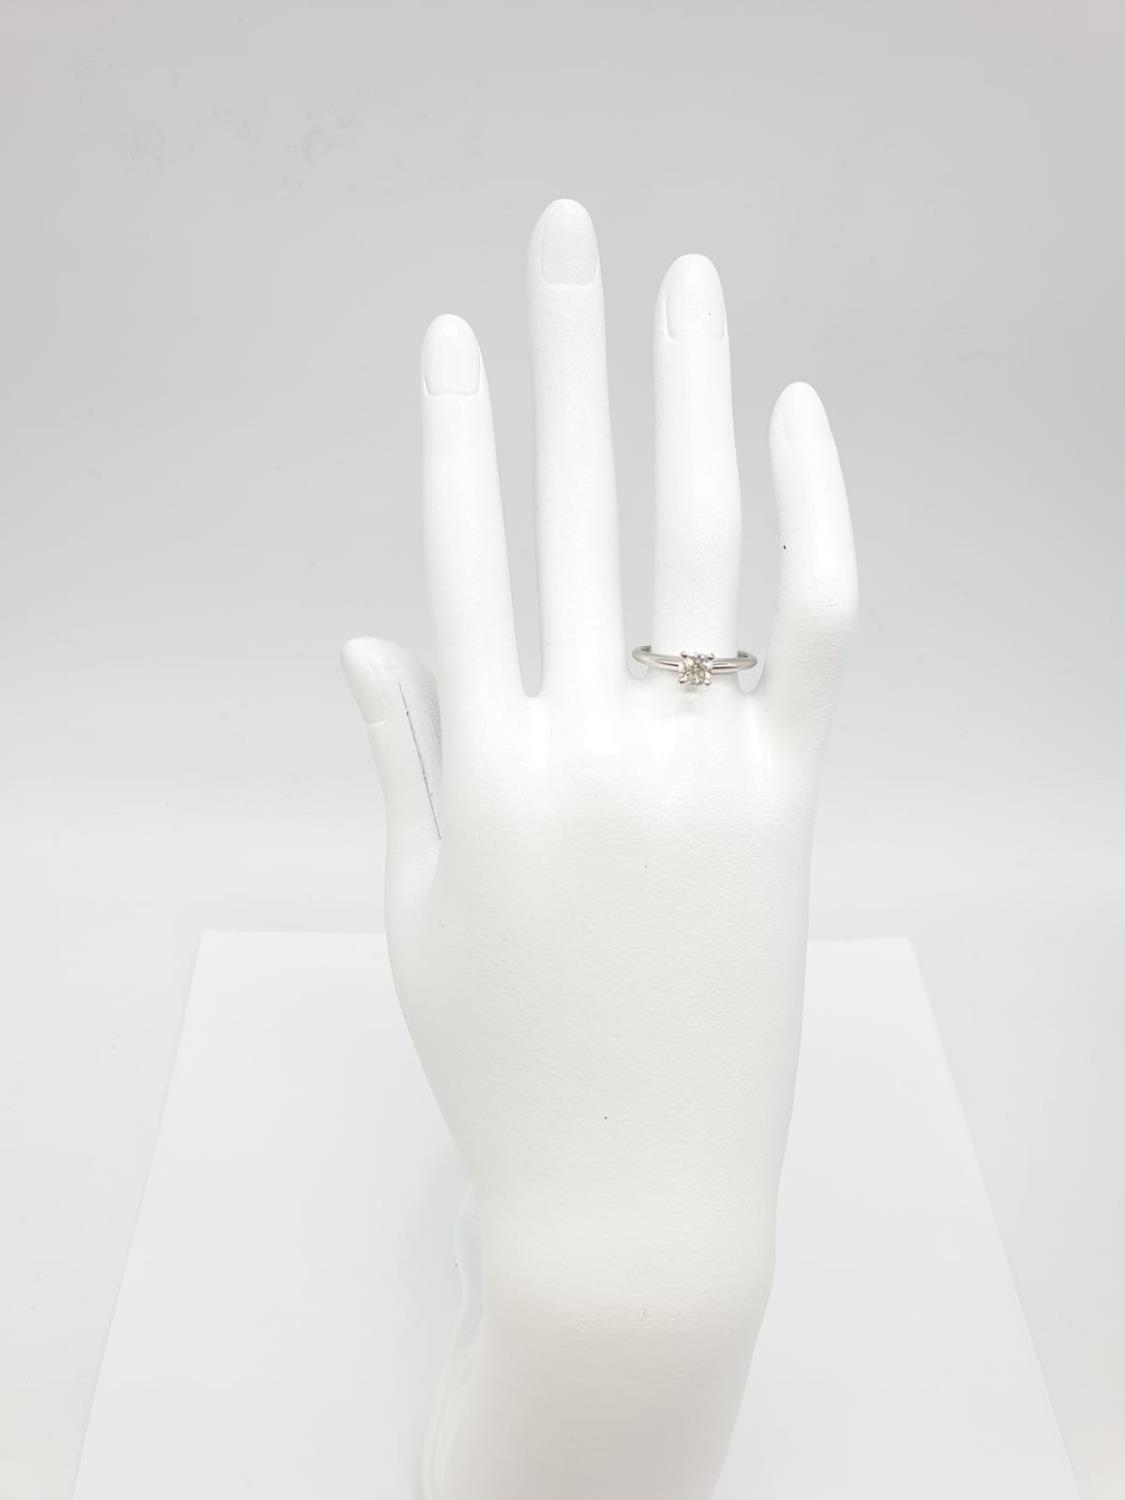 14ct white gold with 0.56ct diamond solitaire ring (round brilliant cut, colour H, clarity SI1 - Image 9 of 18